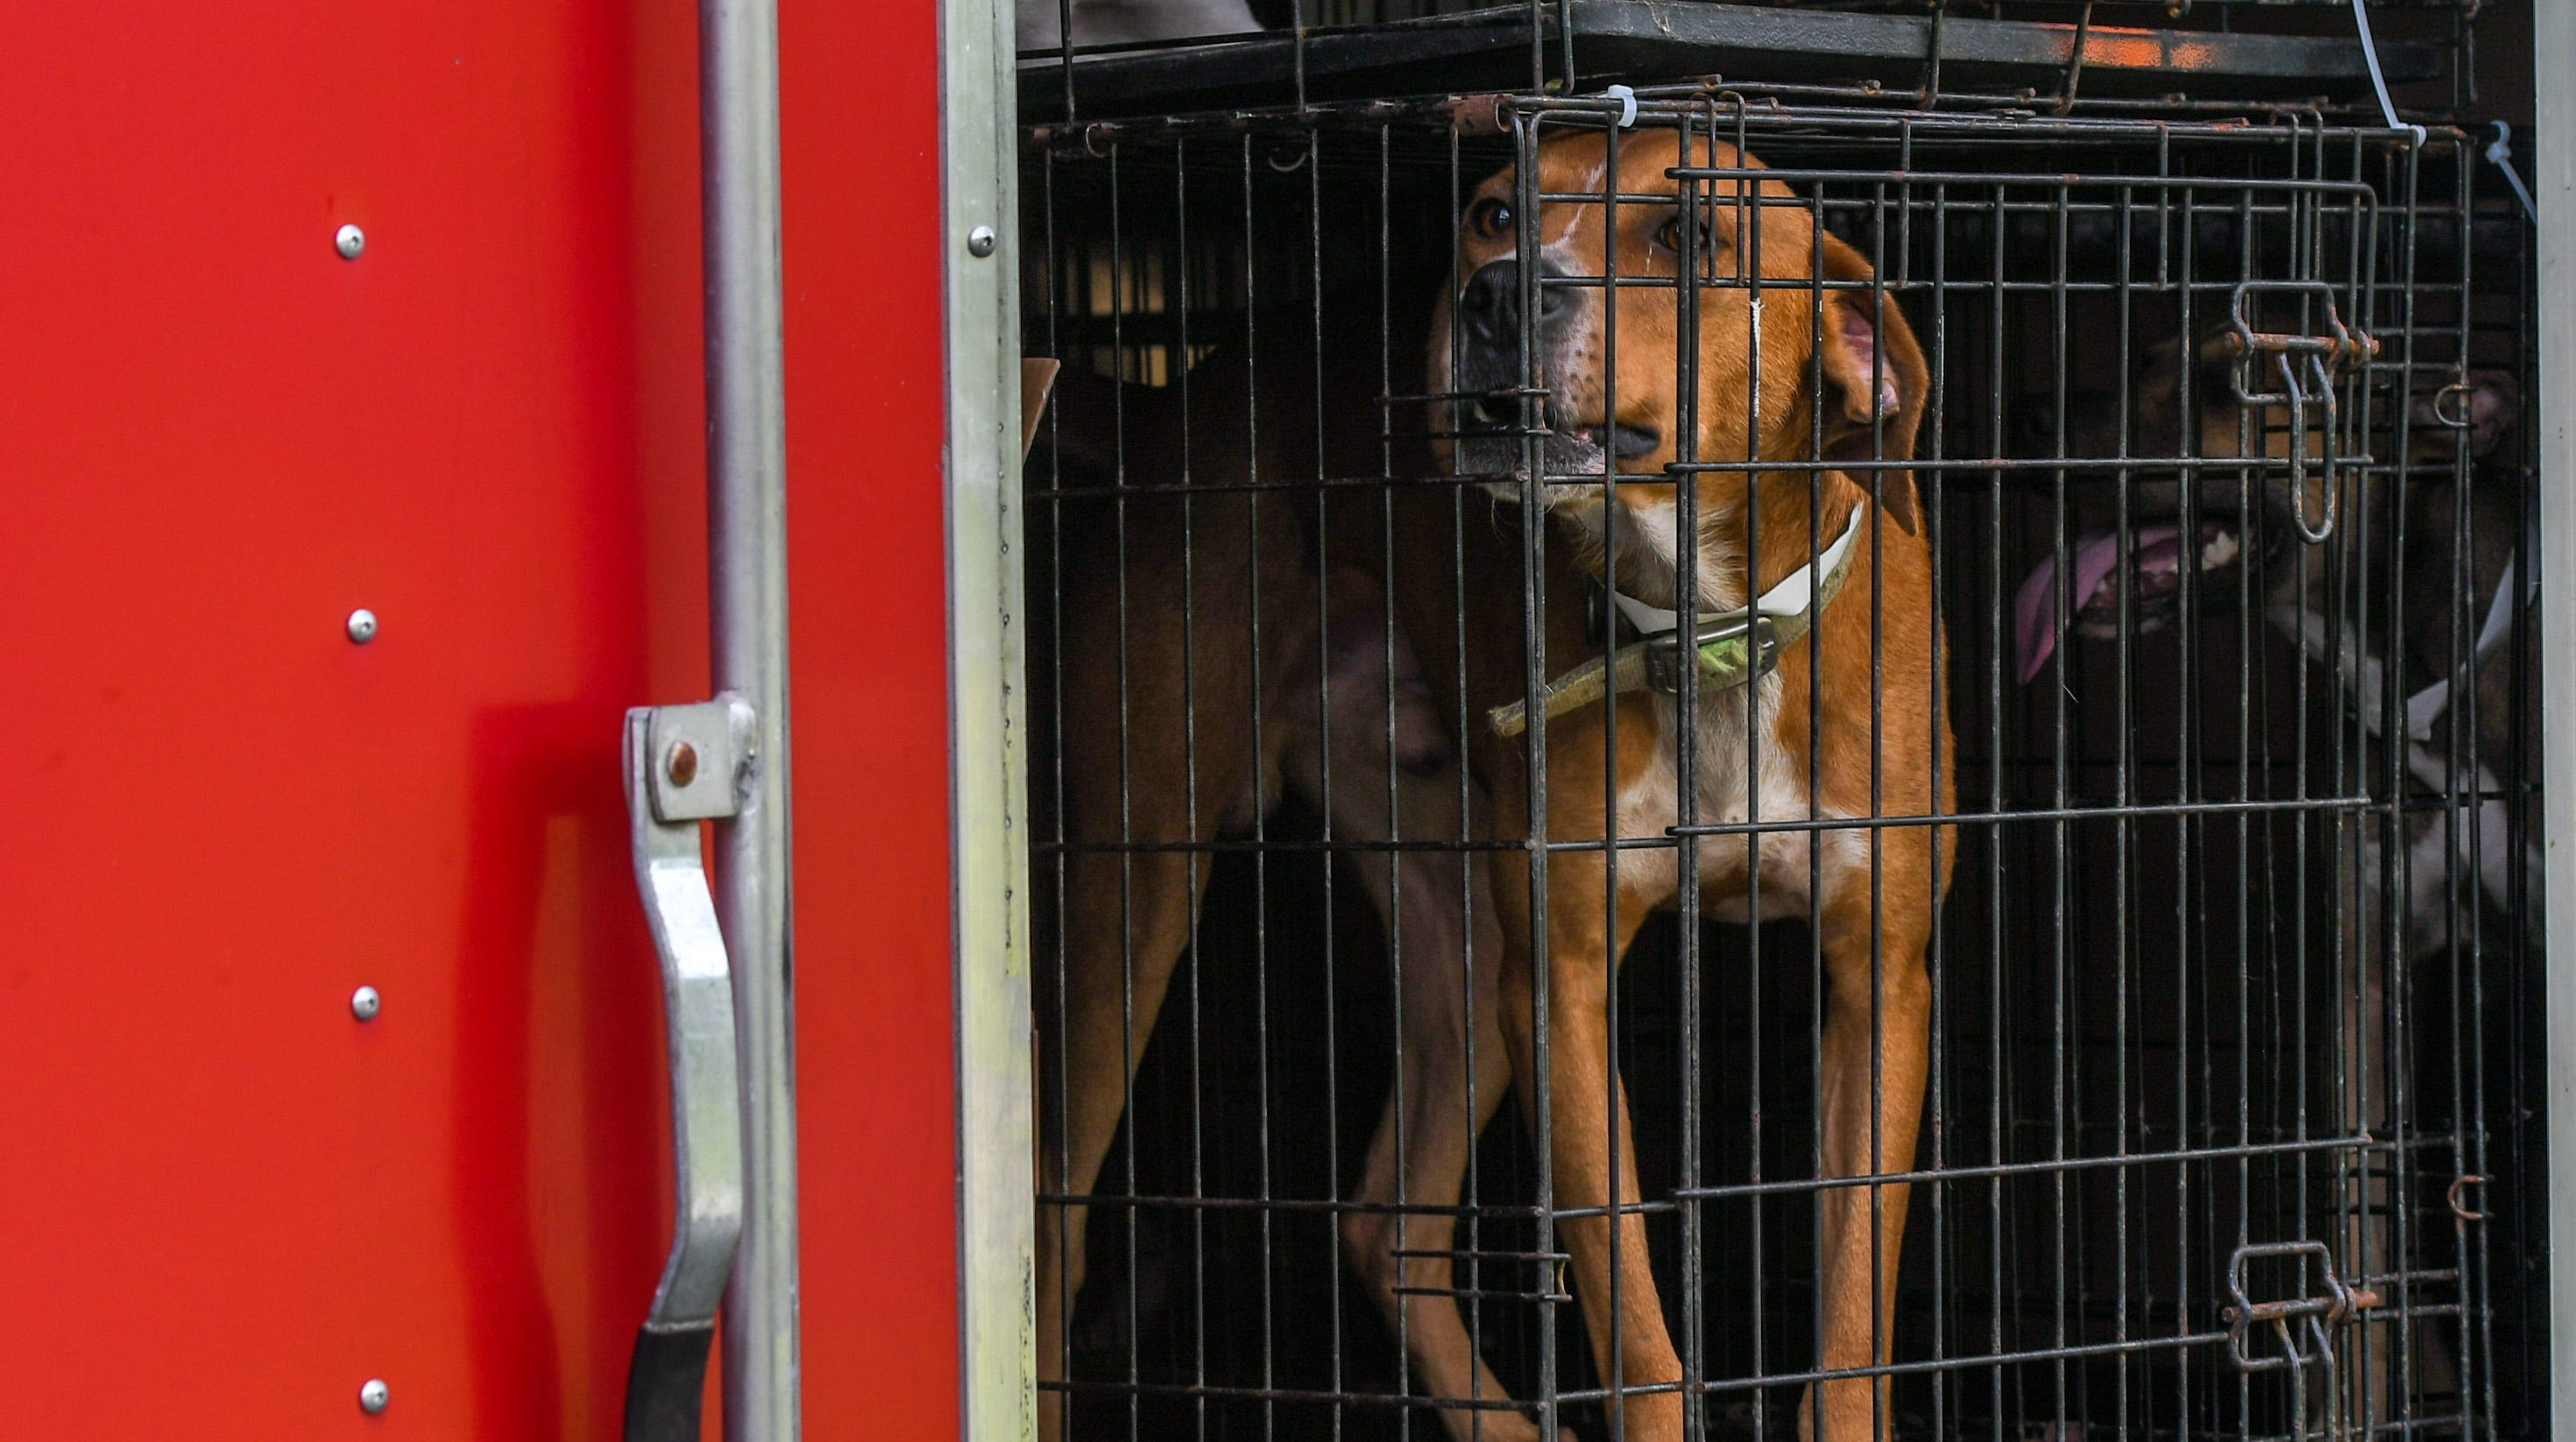 'We're looking at really saving these lives': Dogs displaced by Florence arrive in Delaware